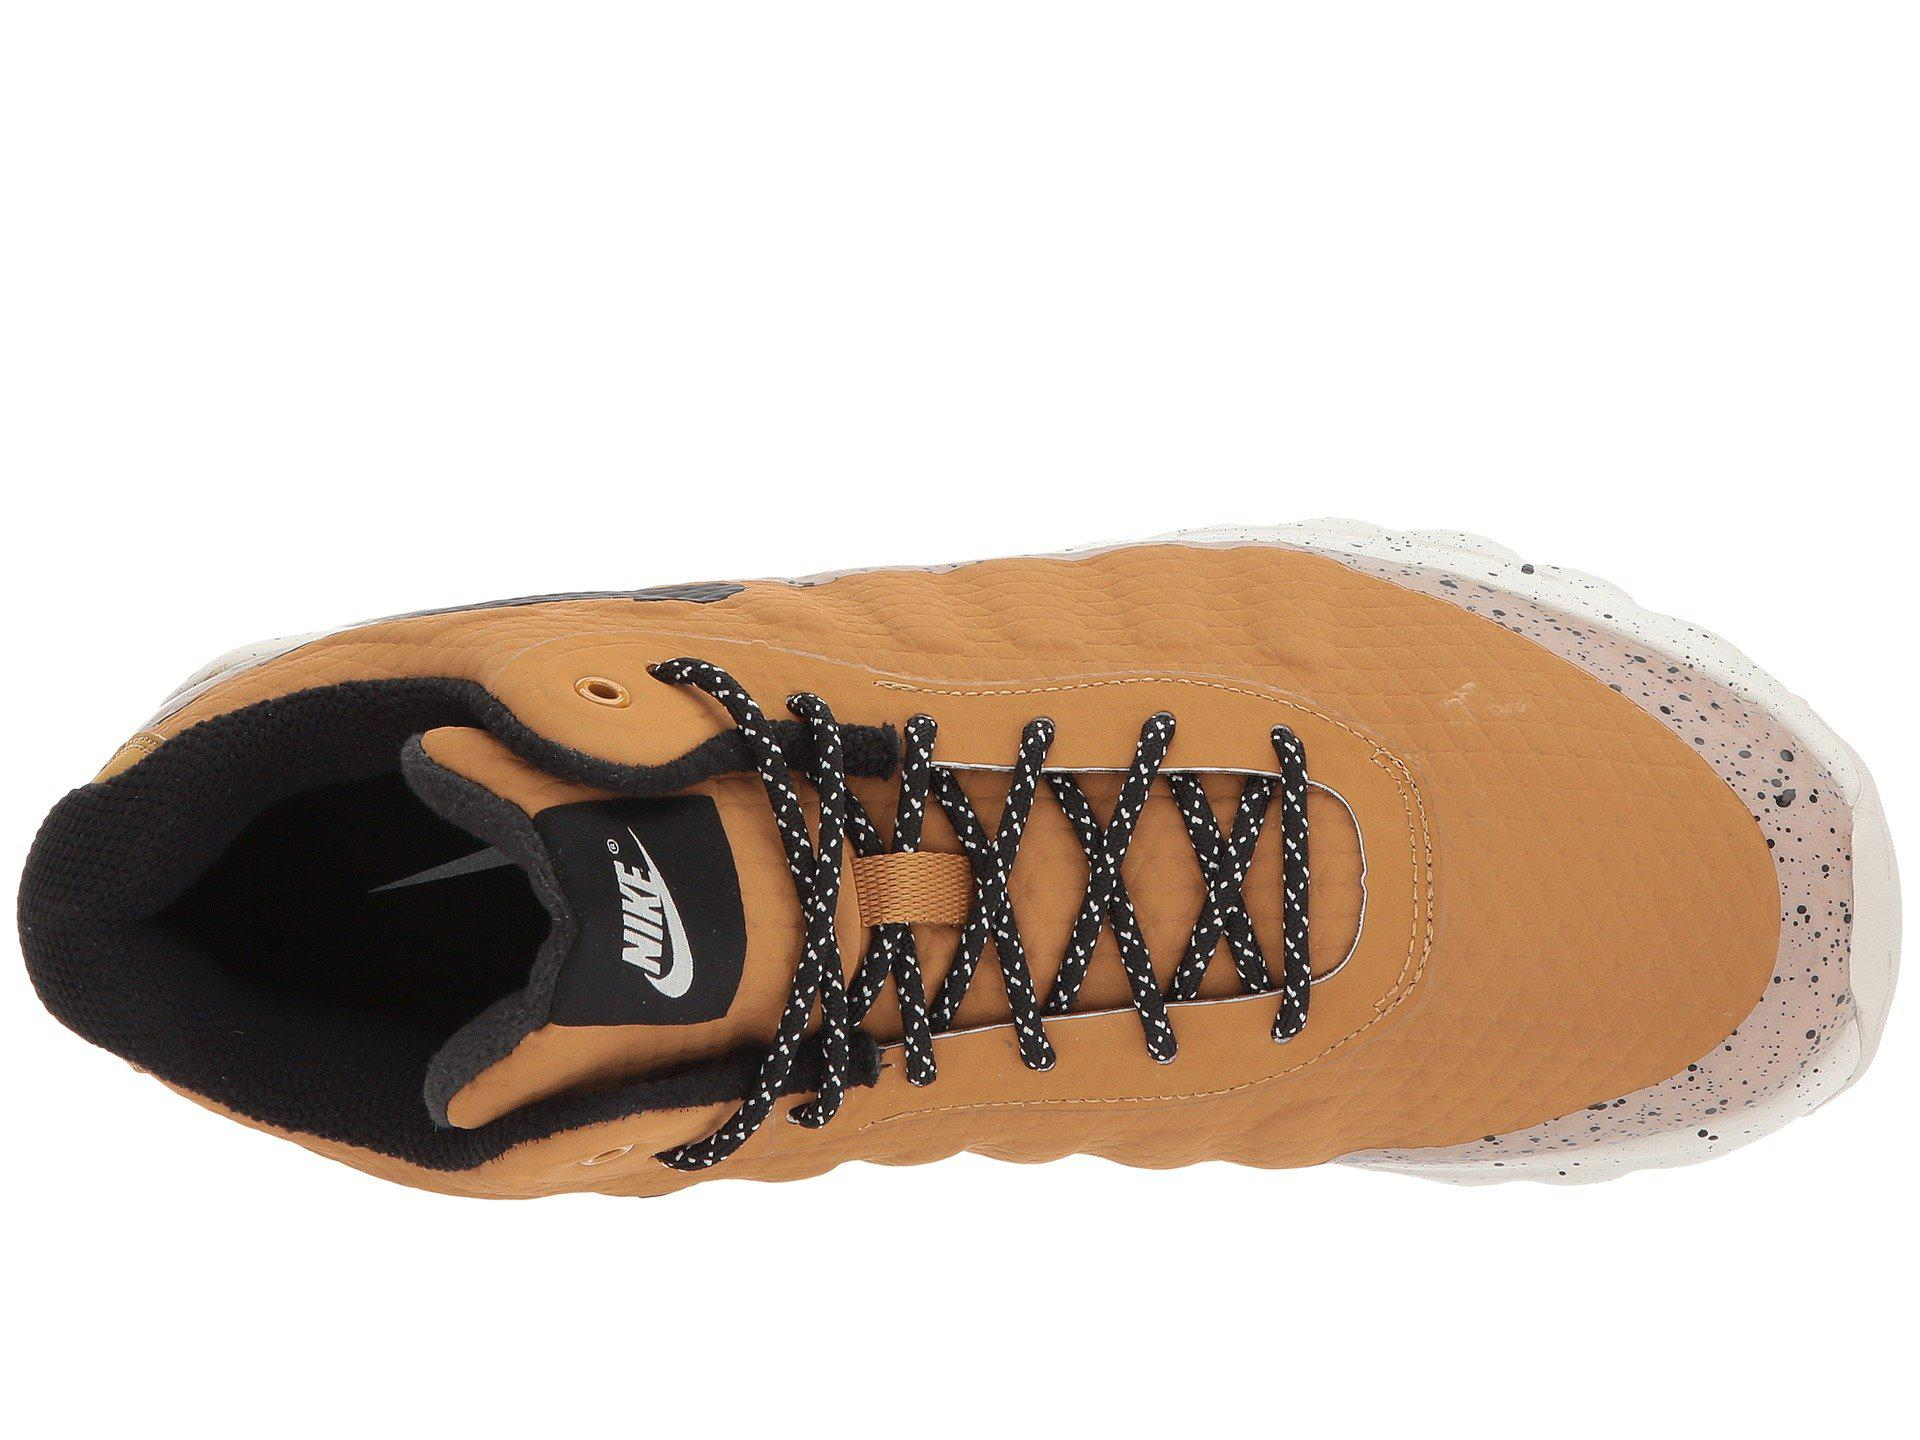 detailed look bcef0 9d7c6 Nike Air Max Invigor Mid for Men - Lyst